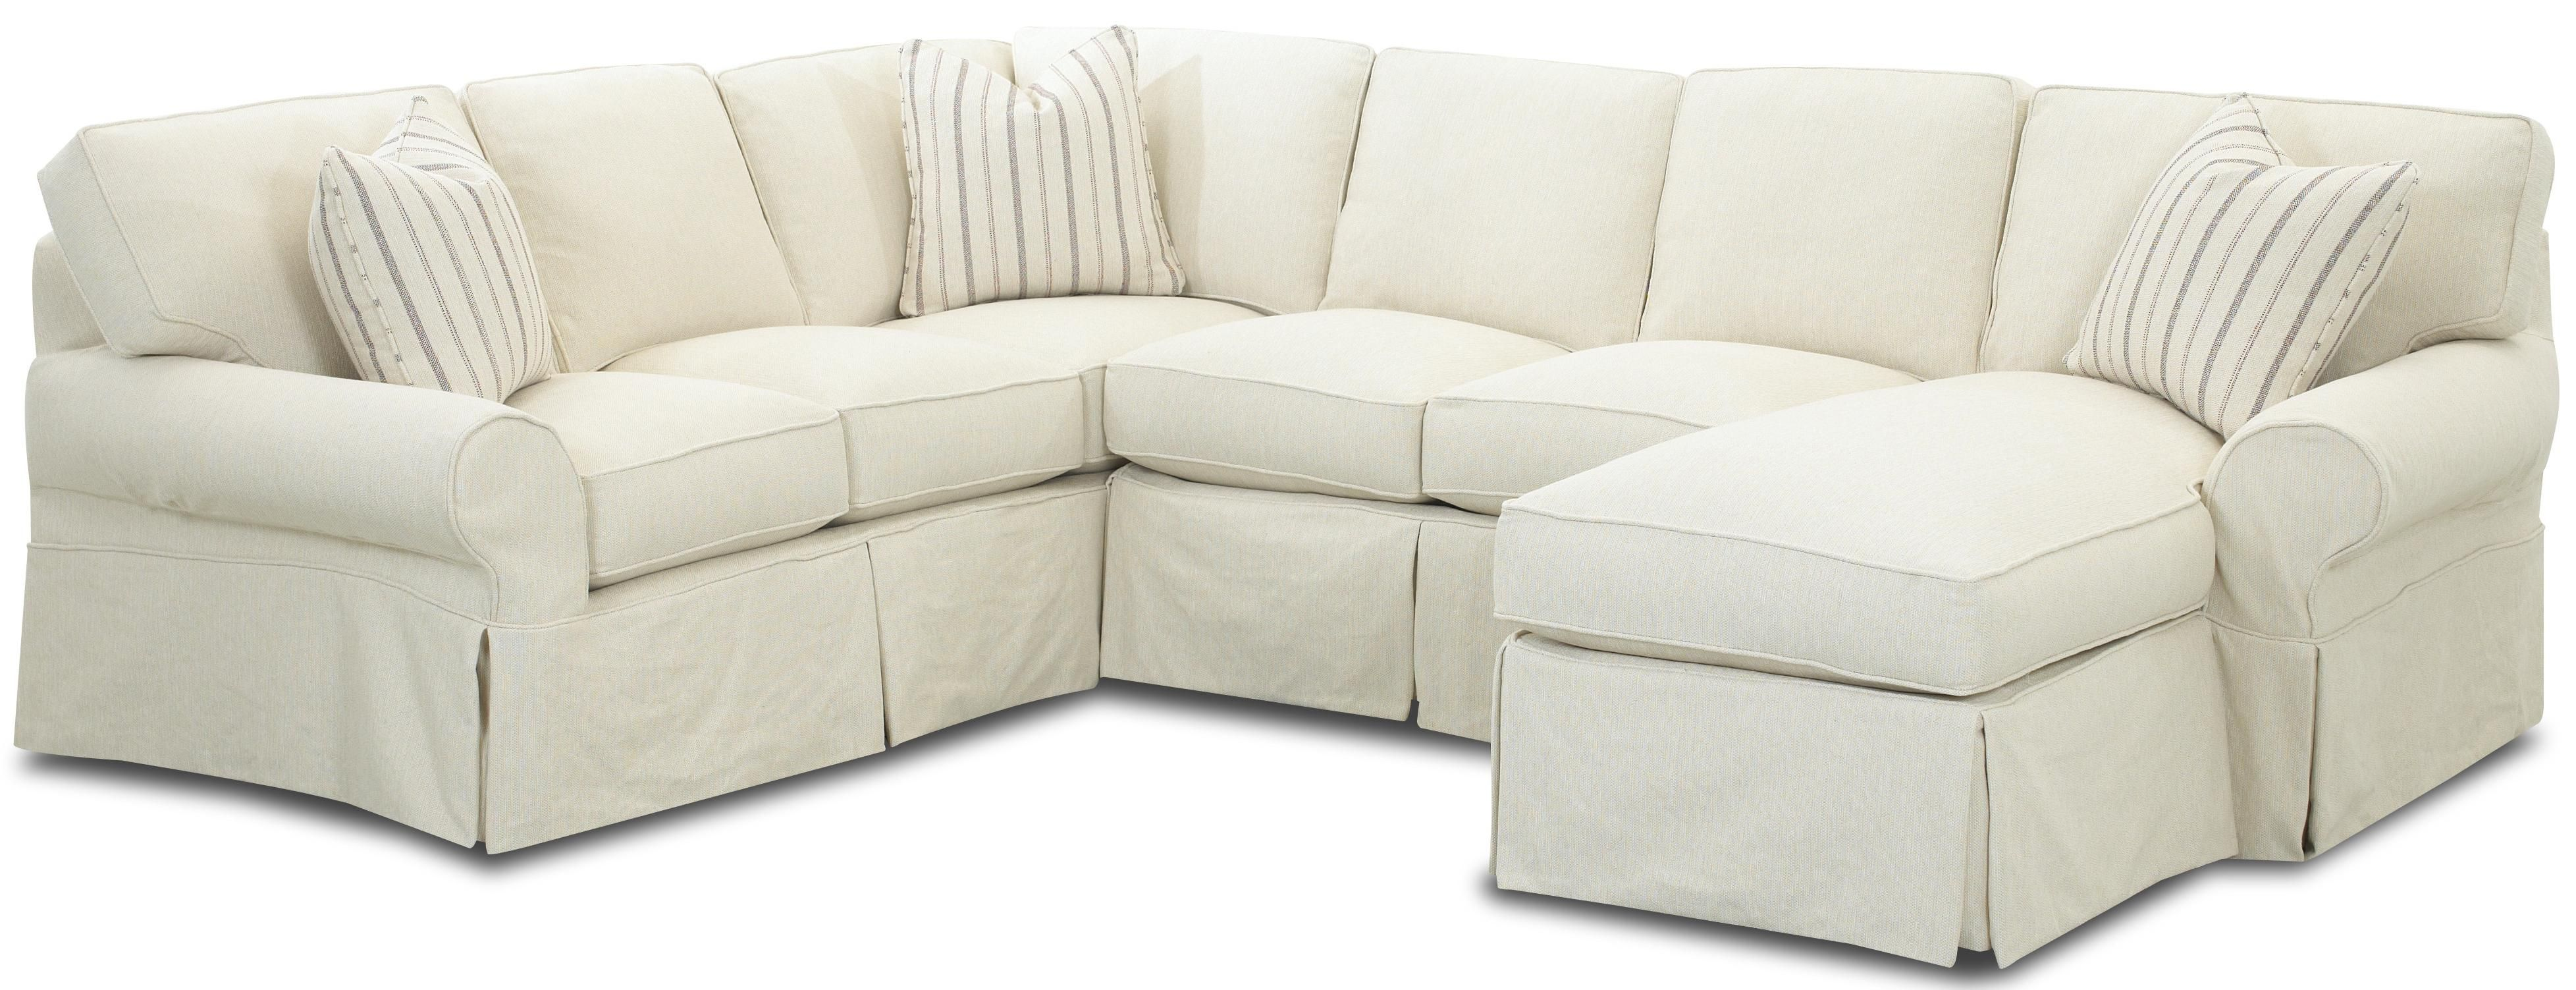 Awesome Making Sectional Sofa Slipcovers Cushions | Living Room Styles Ideas